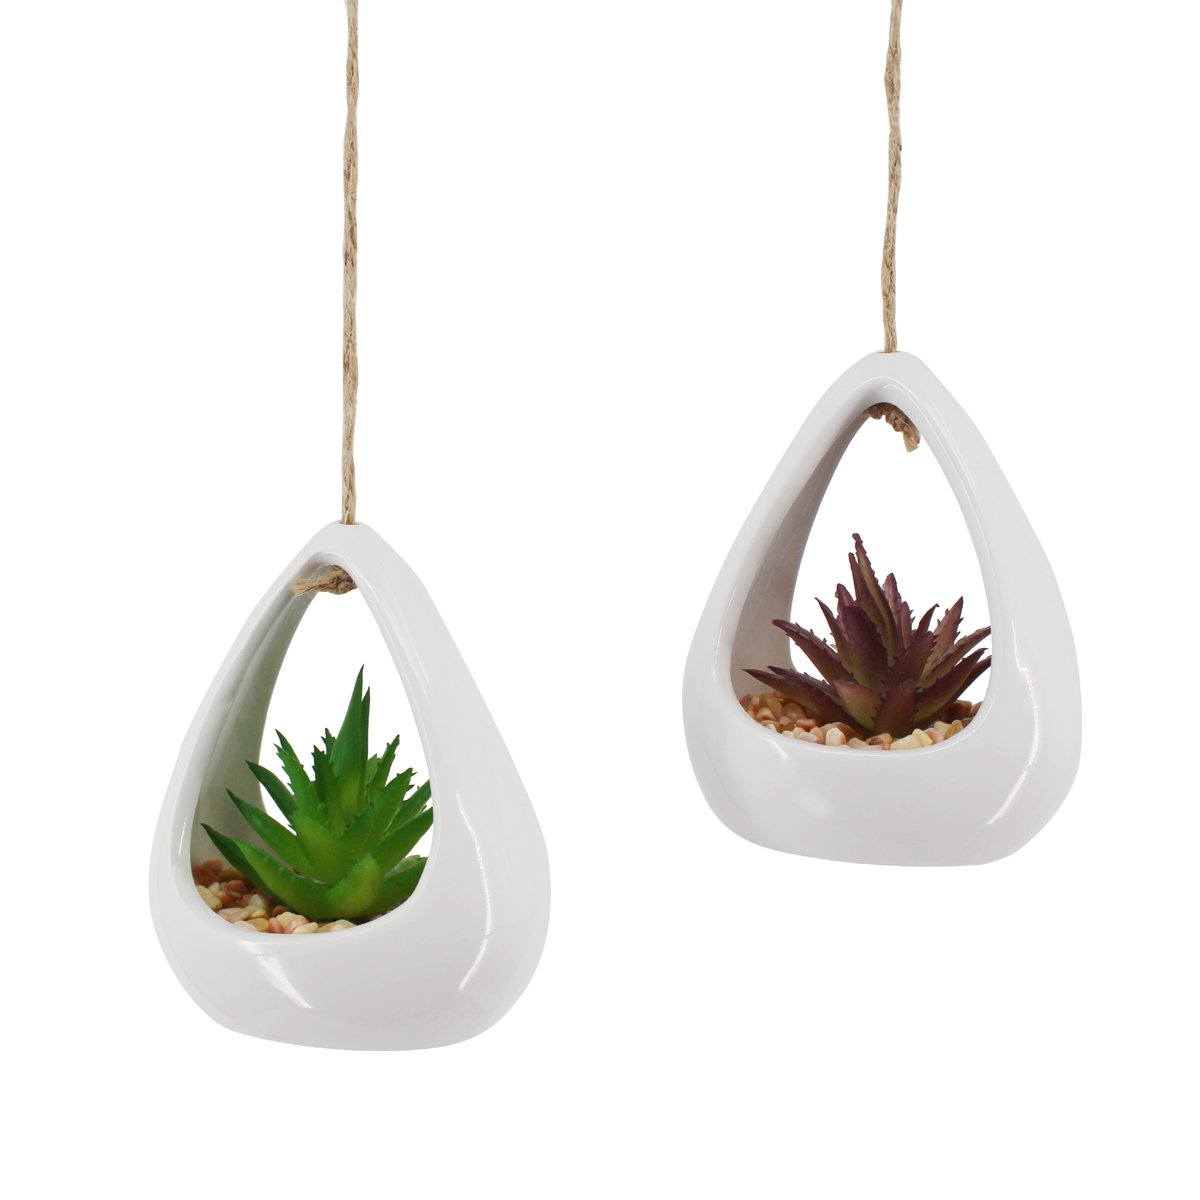 Greatflower Pack of 2 Hanging Plants Tear-Shaped Ceramic Pot with Artificial Succulent